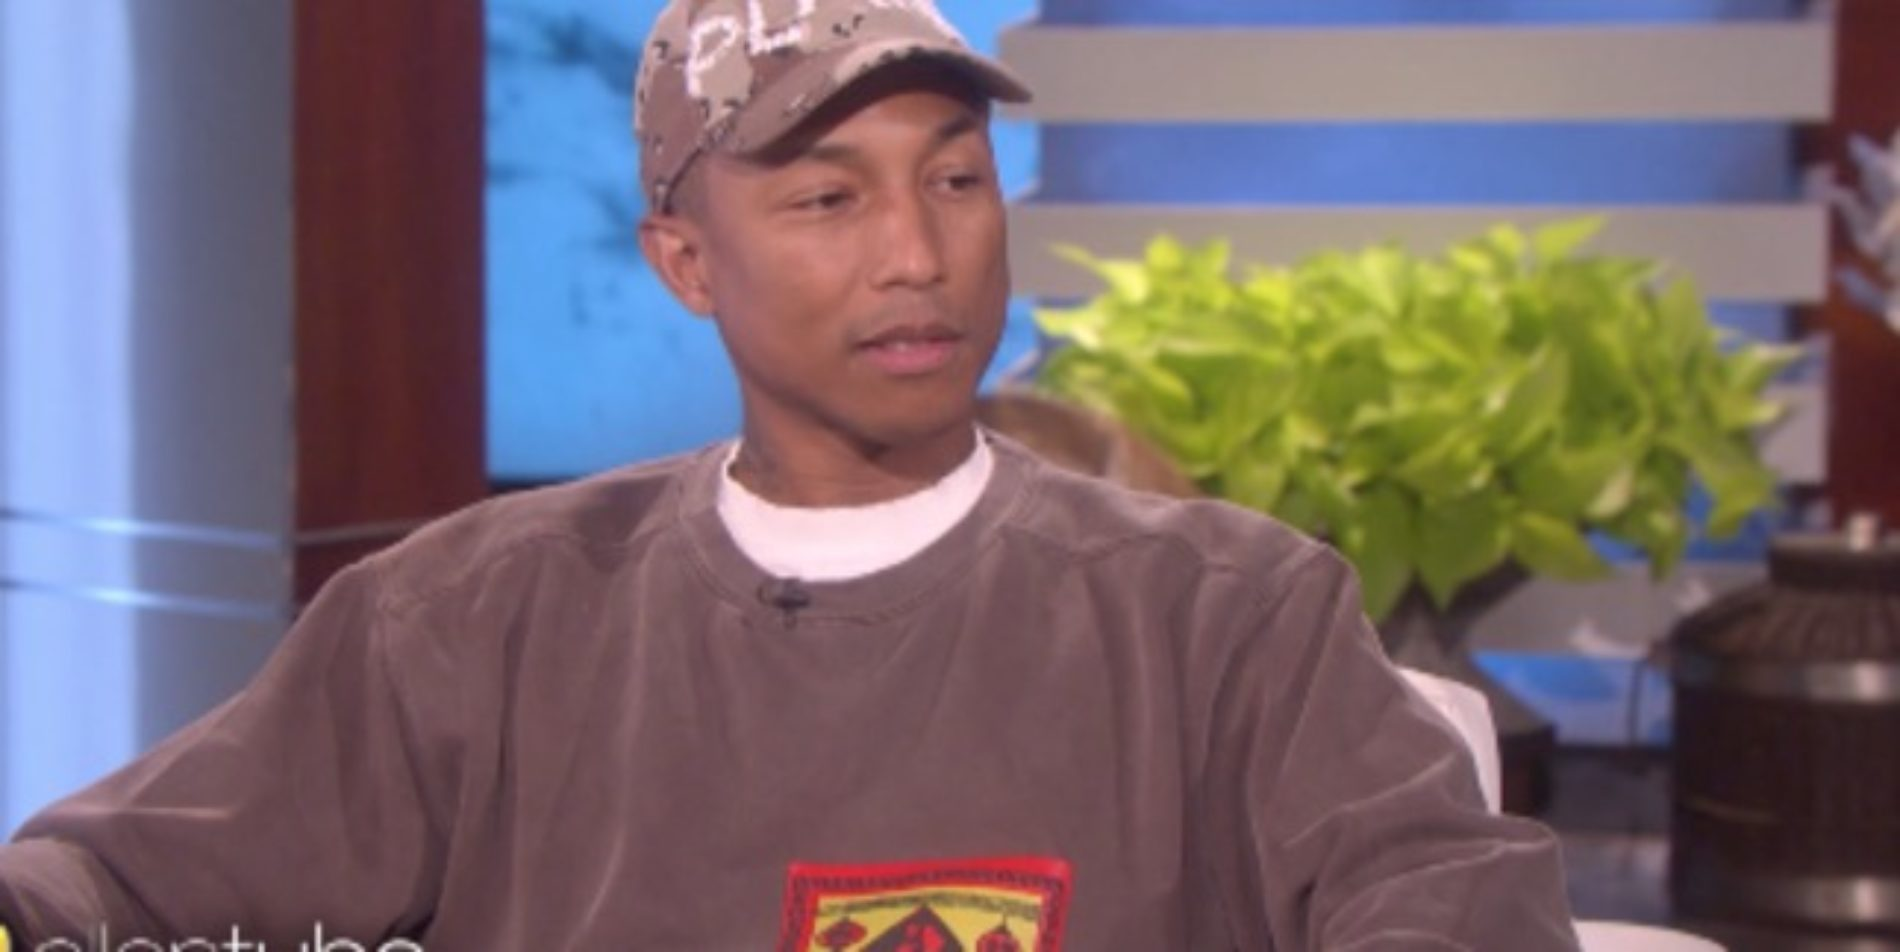 """""""We All Have To Get Used To Everyone's Differences."""" Pharrell shuts down Gospel singer Kim Burrell's antigay rant on Ellen's show"""